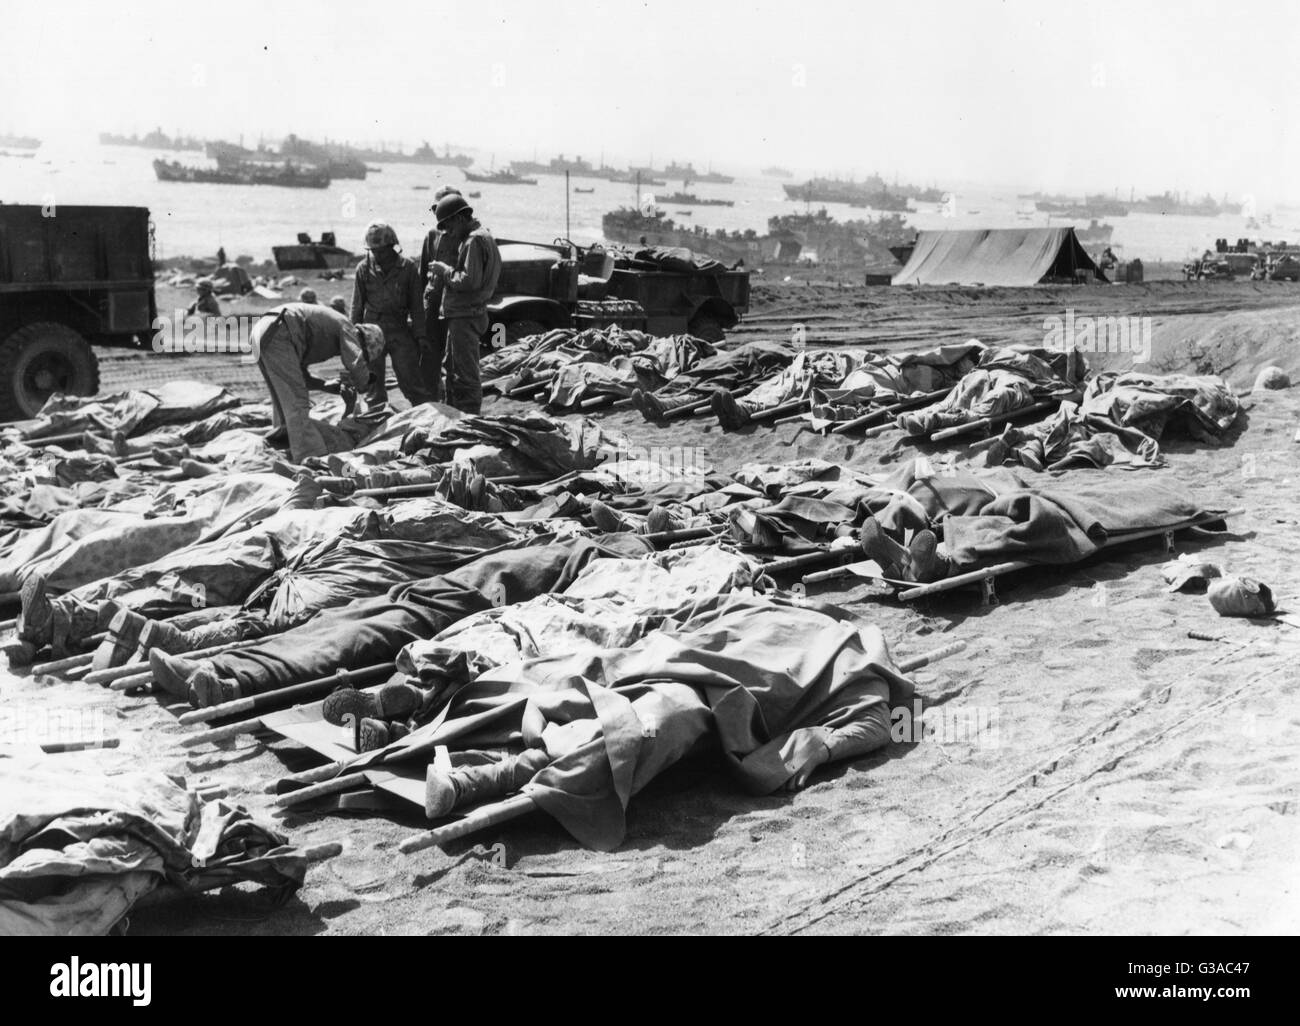 Dead Marines of the 3rd Marine Division, covered with their ponchos, lie on the beach after the battle of Iwo Jima. - Stock Image